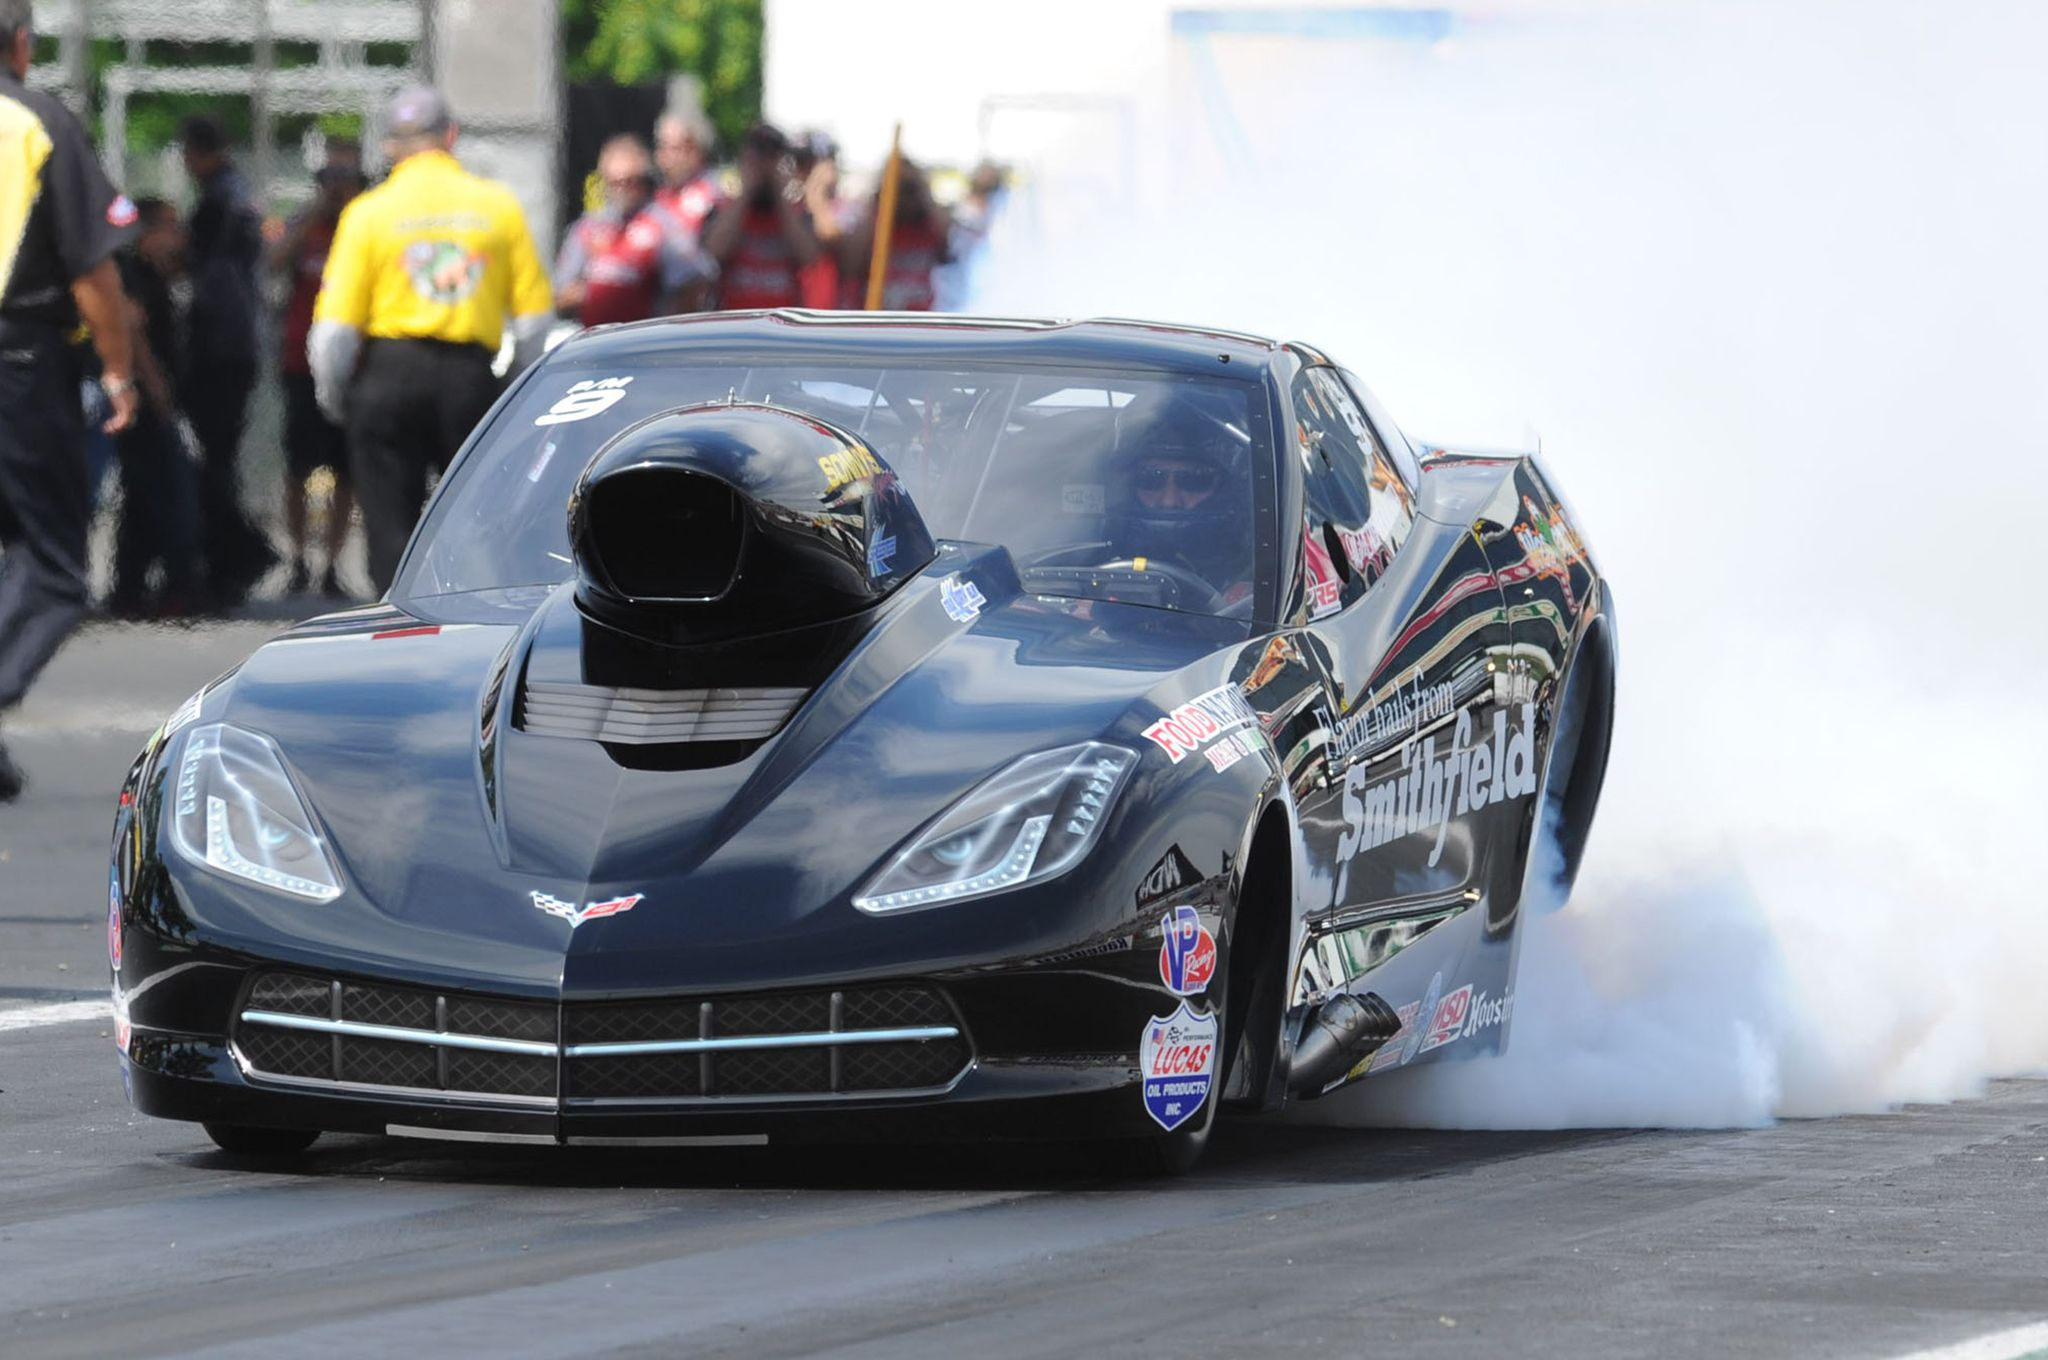 c7-corvette-pro-mod-burnout-front-view